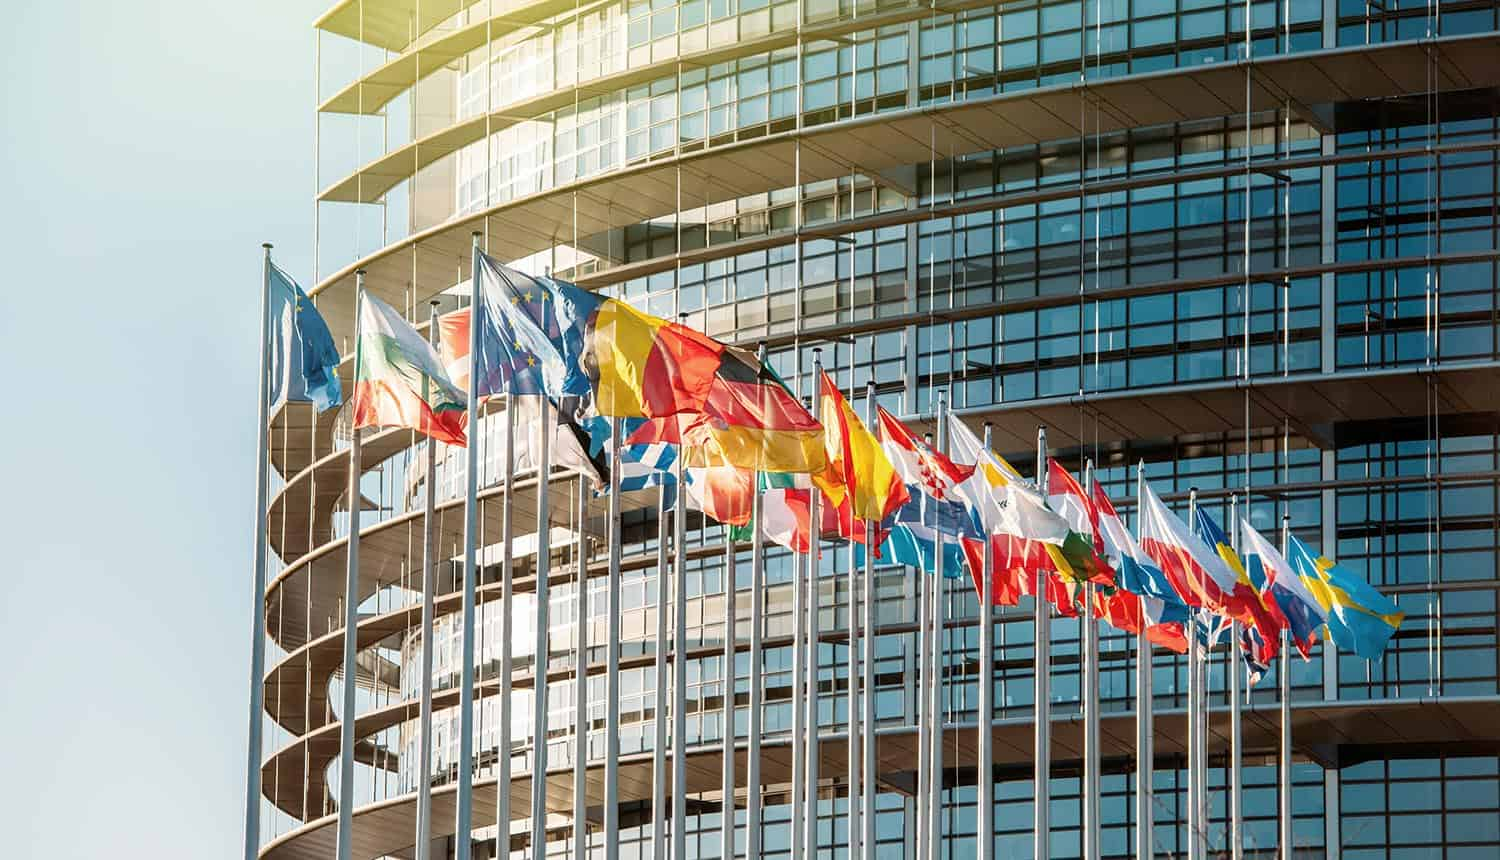 European Parliament building with flags waving showing privacy commissioner complain of GDPR